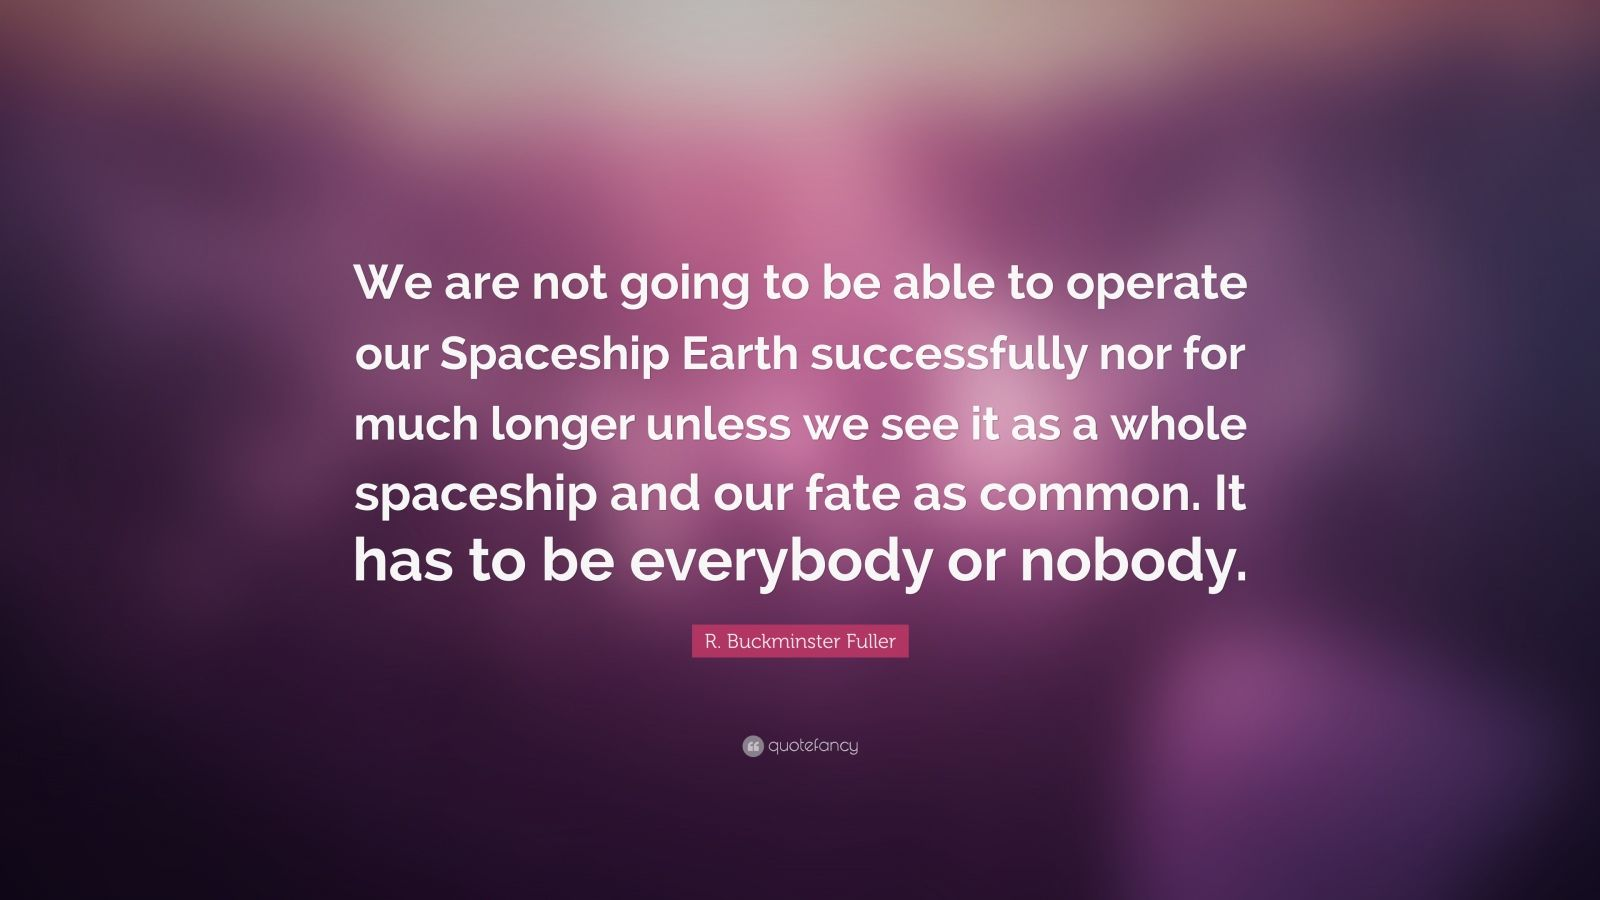 "R. Buckminster Fuller Quote: ""We are not going to be able to operate our Spaceship Earth successfully nor for much longer unless we see it as a whole spaceship and our fate as common. It has to be everybody or nobody."""